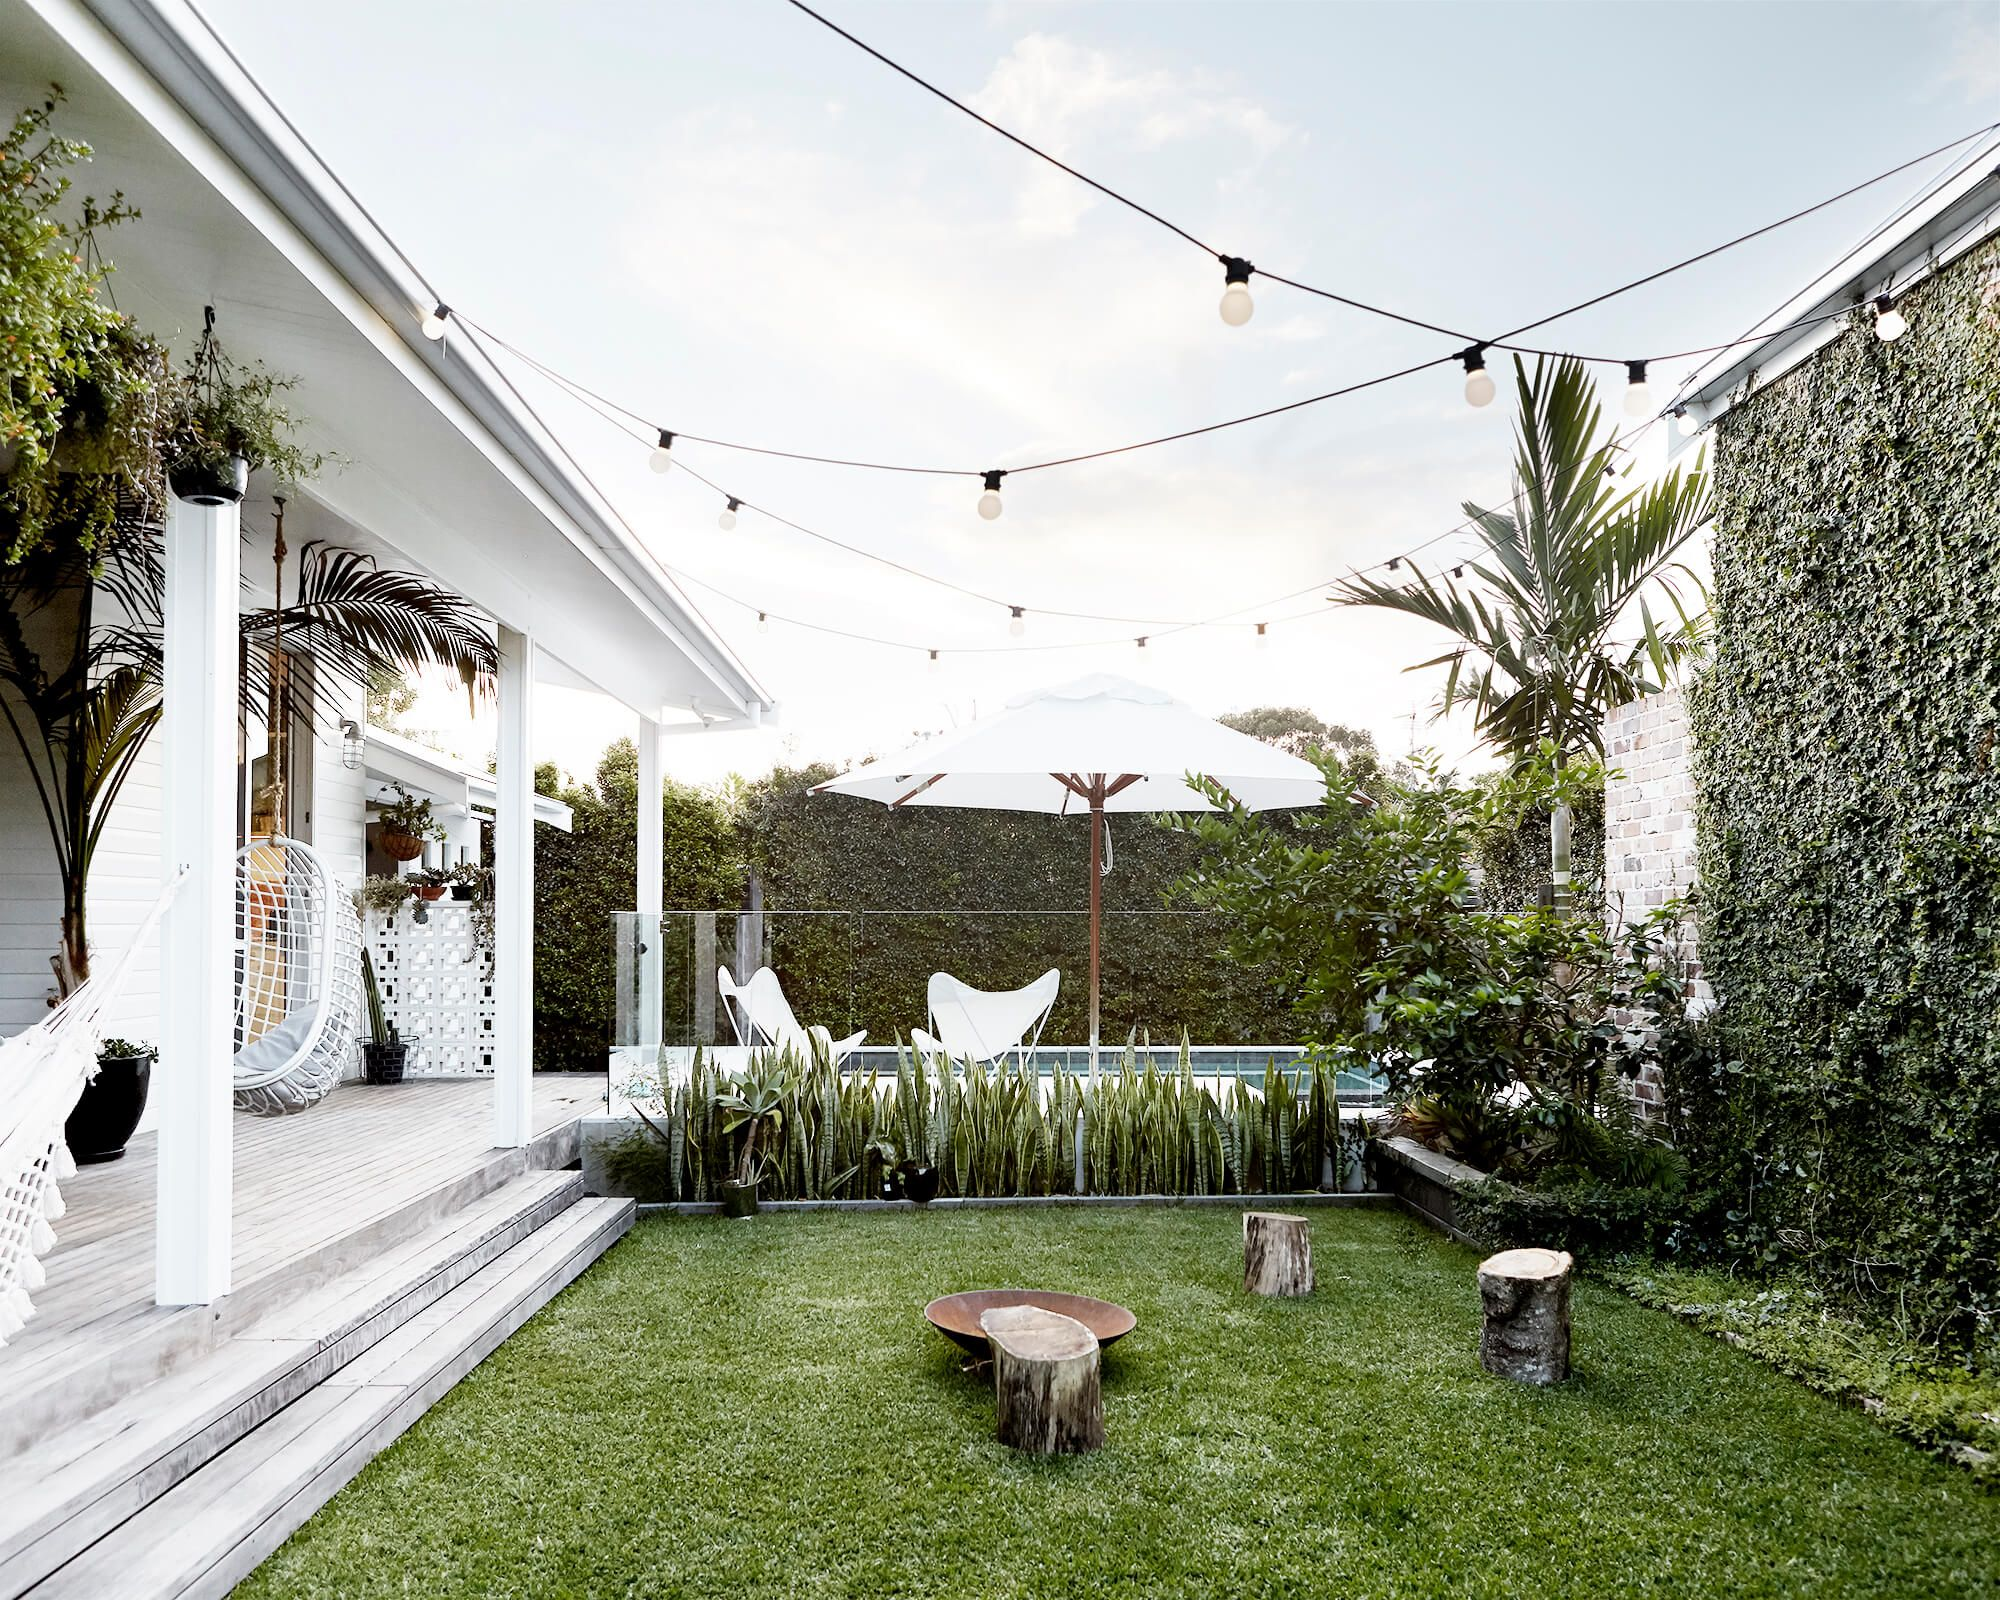 Stunning outdoor area perfect for entertaining backyards